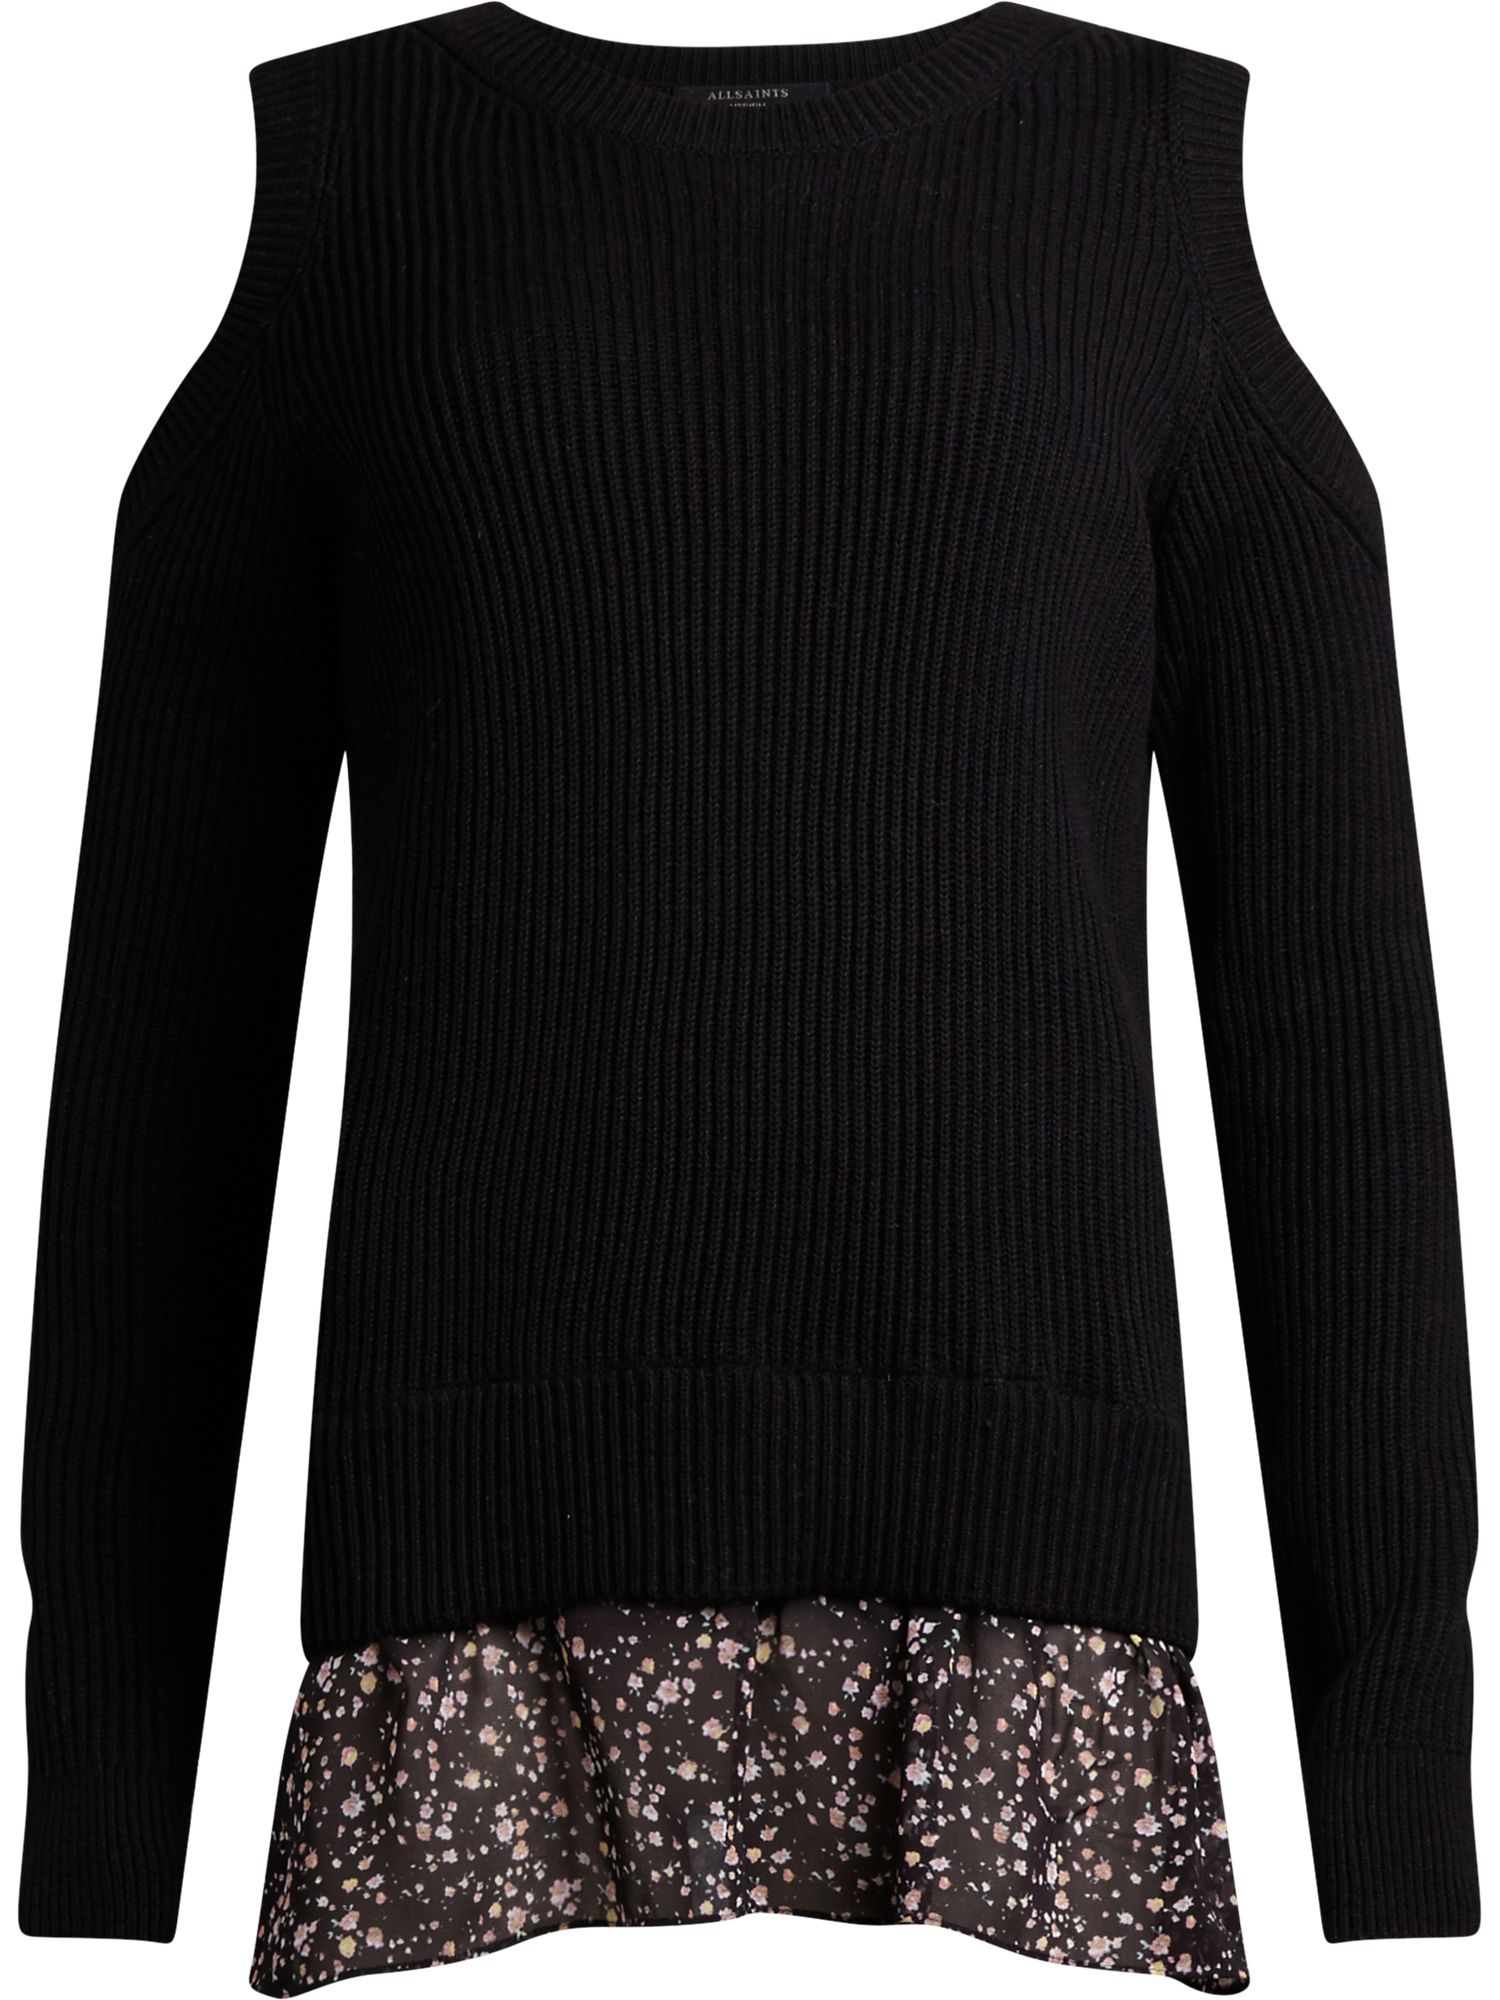 Pepper Jumper by All Saints